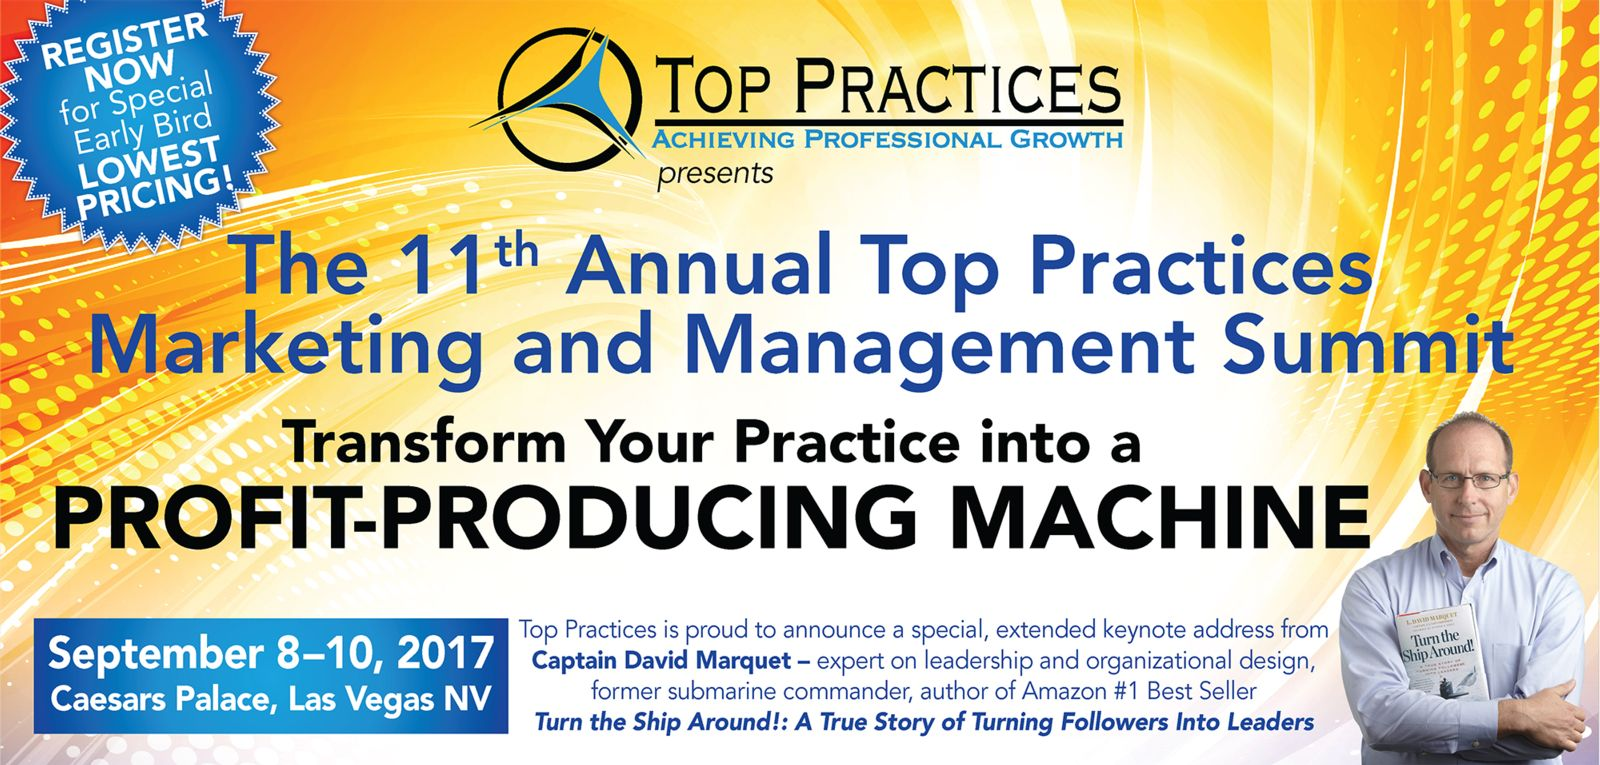 11th Annual Top Practices Summit